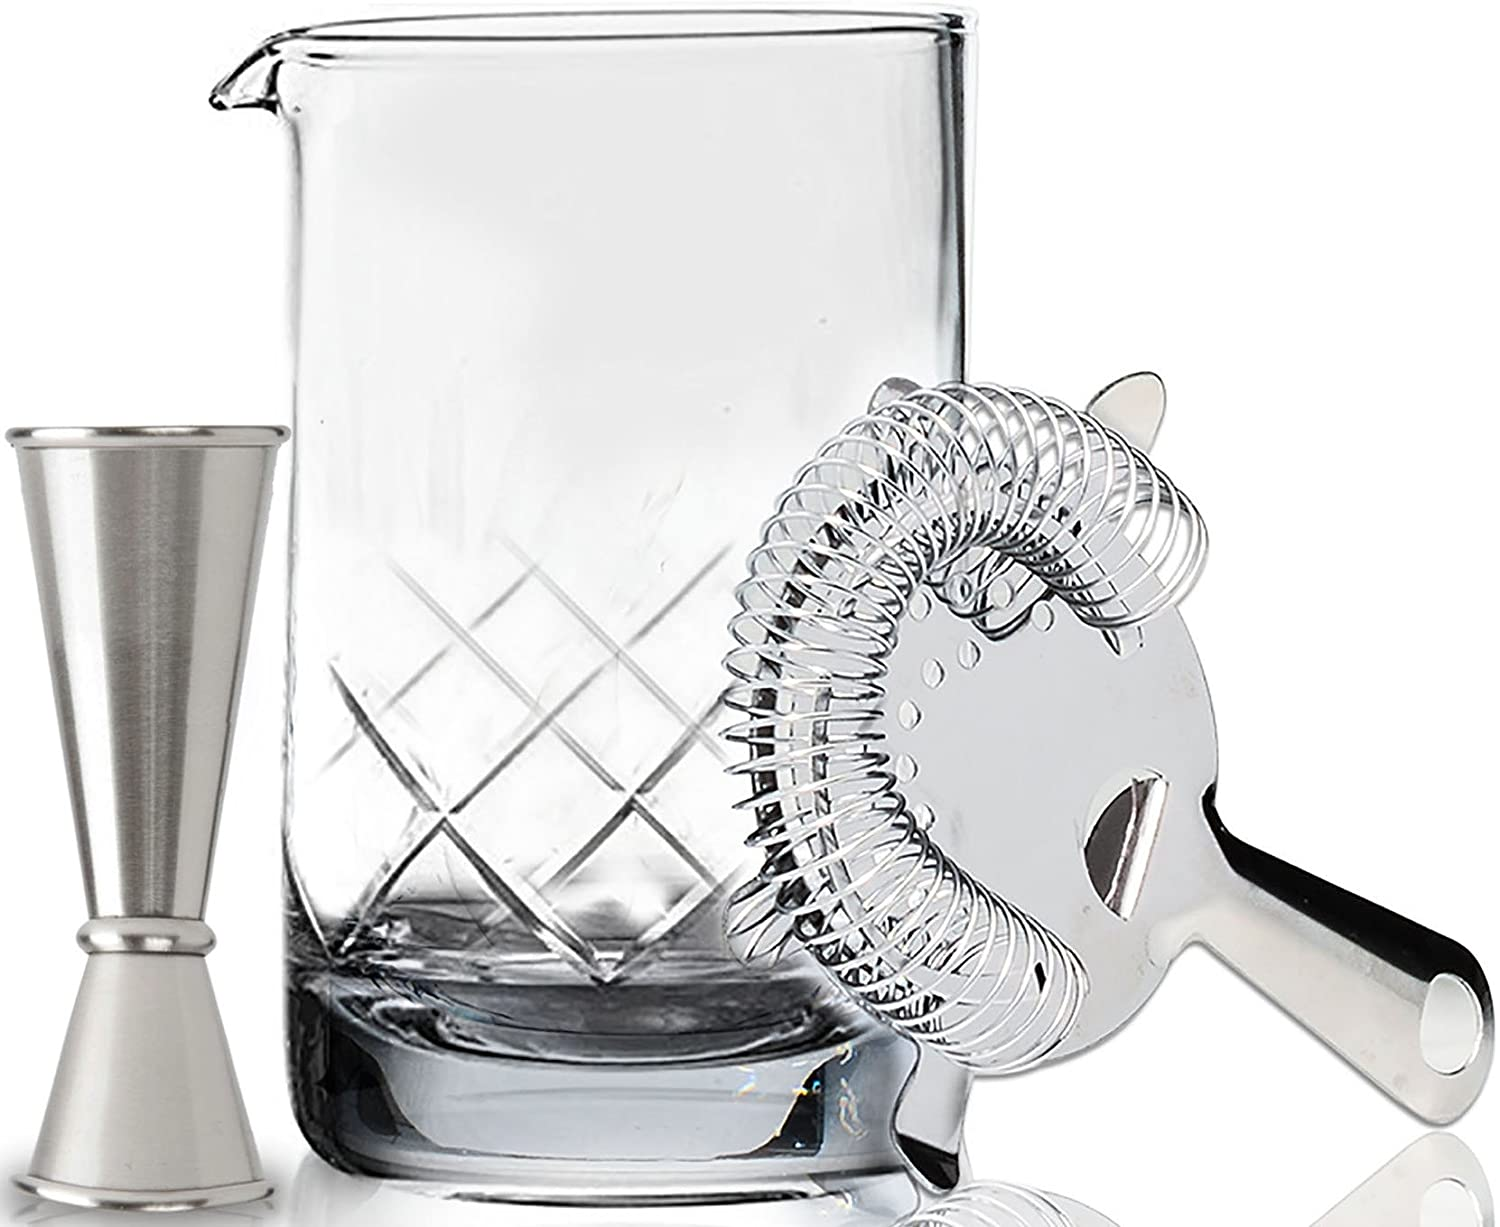 Premium Cocktail Mixing Glass Set - Thick Bottom 18oz (550ml) Seamless Lead Free Crystal Mixing Glass, Jigger & Strainer - Professional Quality - Makes a Great Gift Mofado